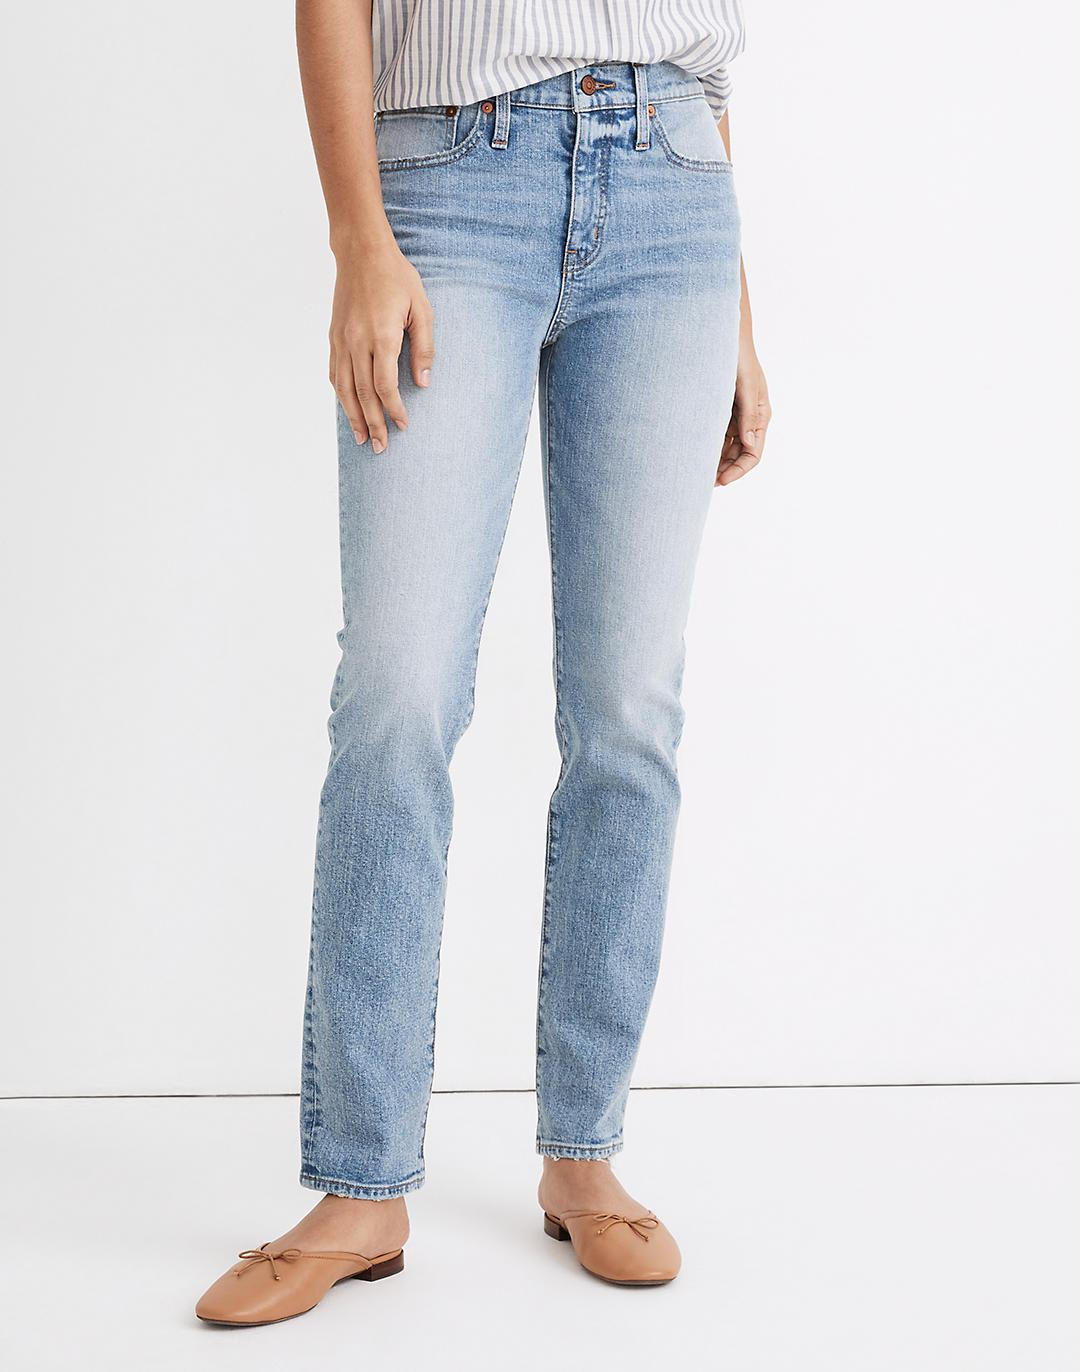 Tomboy Straight Jeans in Glover Wash 3